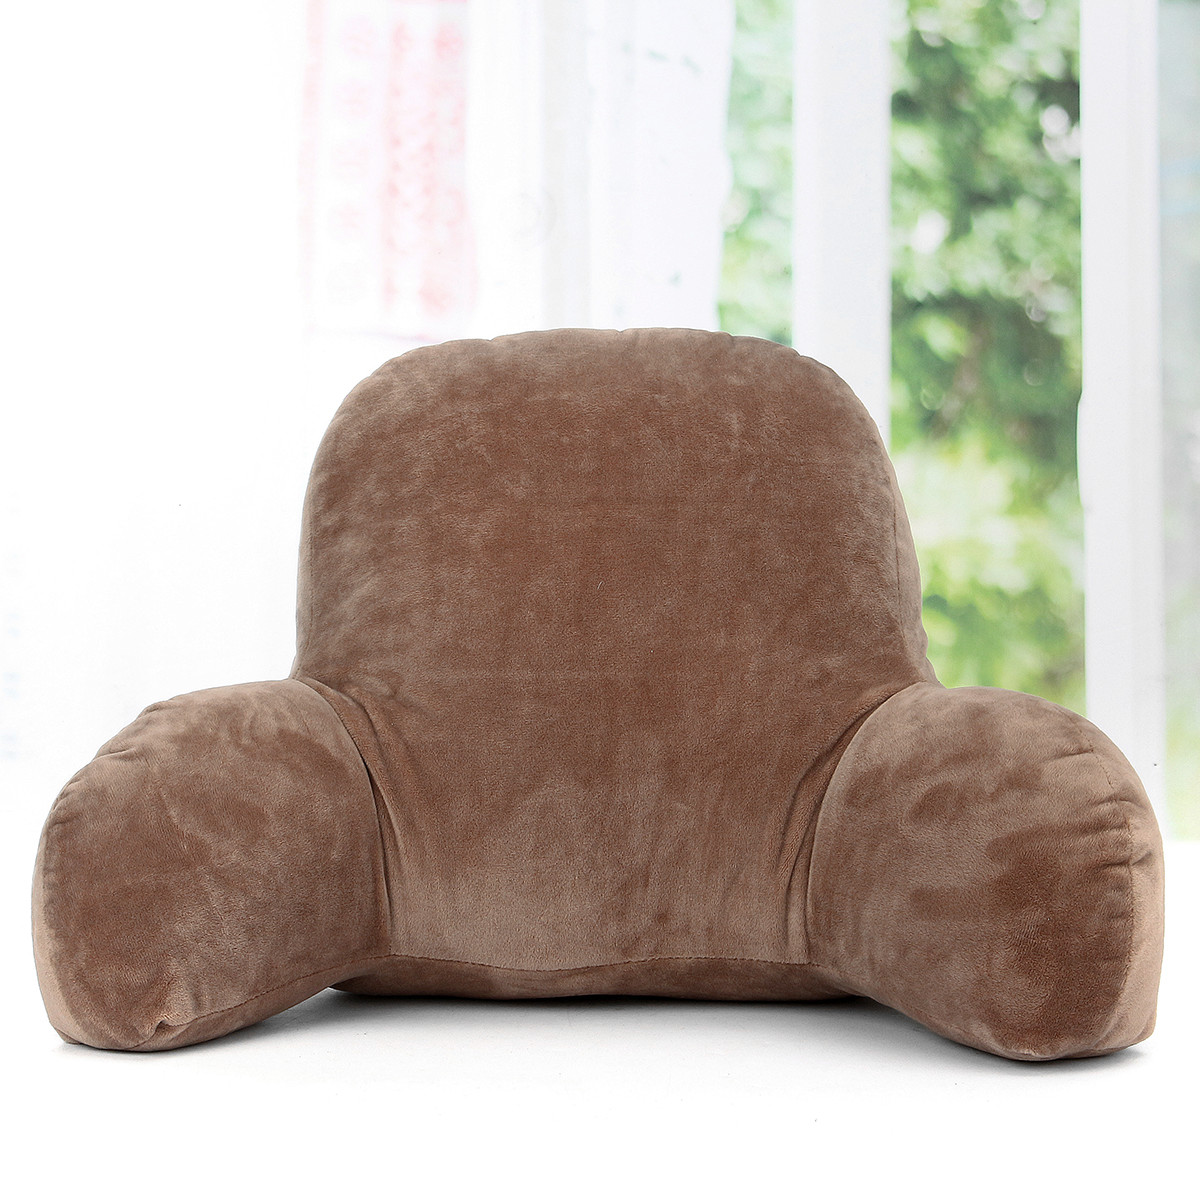 sofa support bed bath and beyond wicker outdoor table coffee lounger office rest back pillow arm